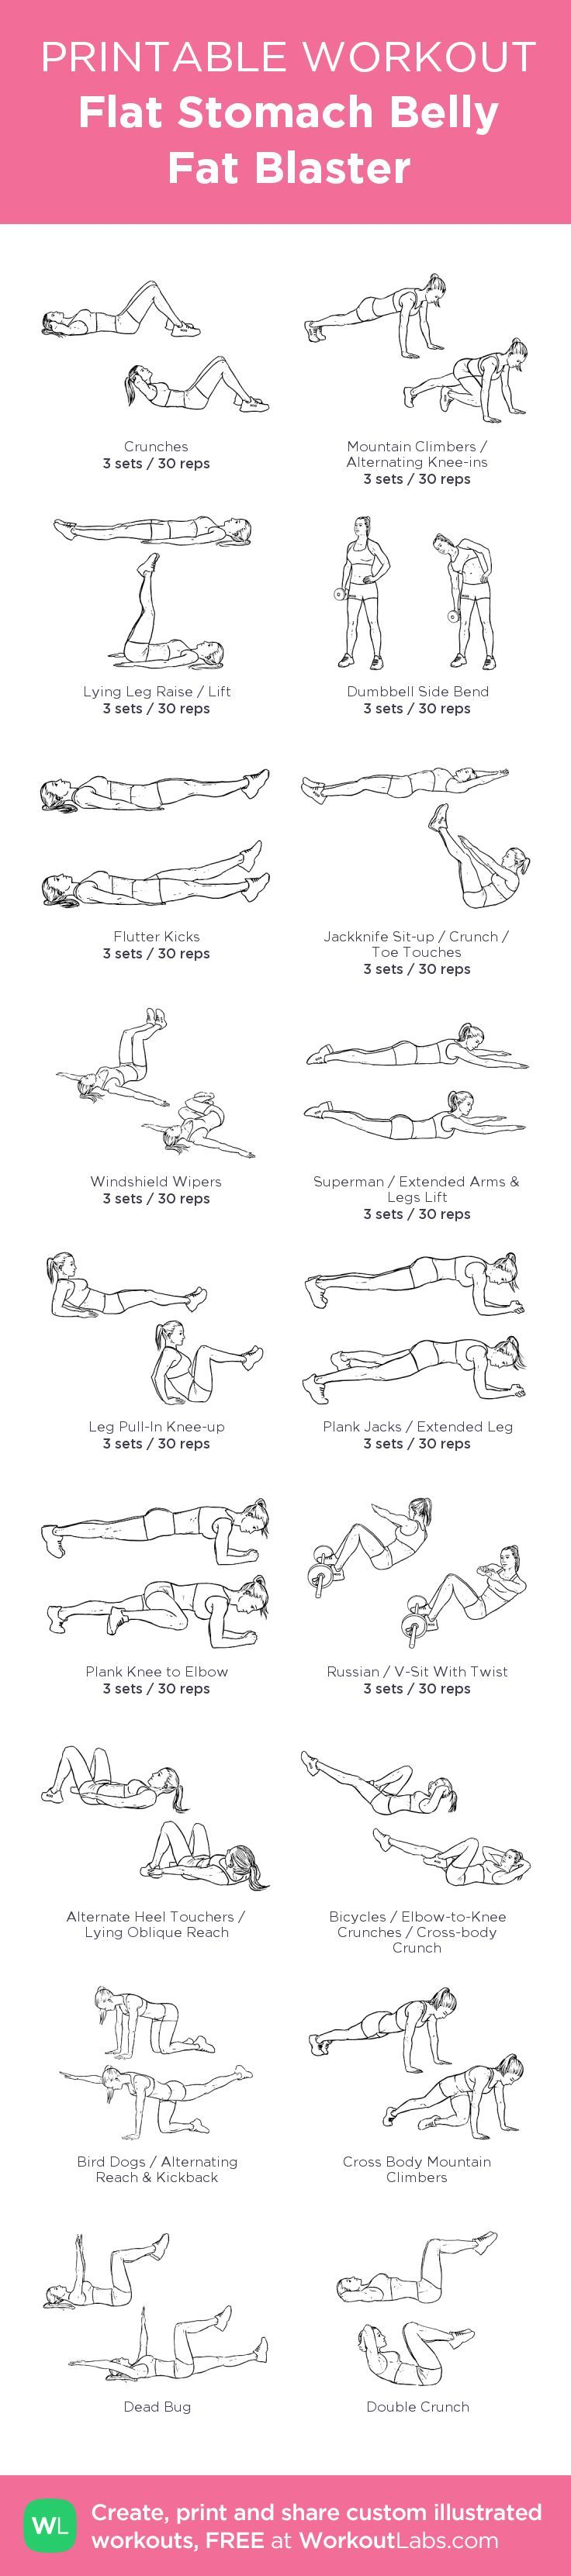 See more here ► https://www.youtube.com/watch?v=t6ic0NKYUMU Tags: how to lose belly fat naturally - Bethany's Flat Stomach Belly Fat Blaster: my visual workout created at WorkoutLabs.com • Click through to customize and download as a FREE PDF! #customworkout